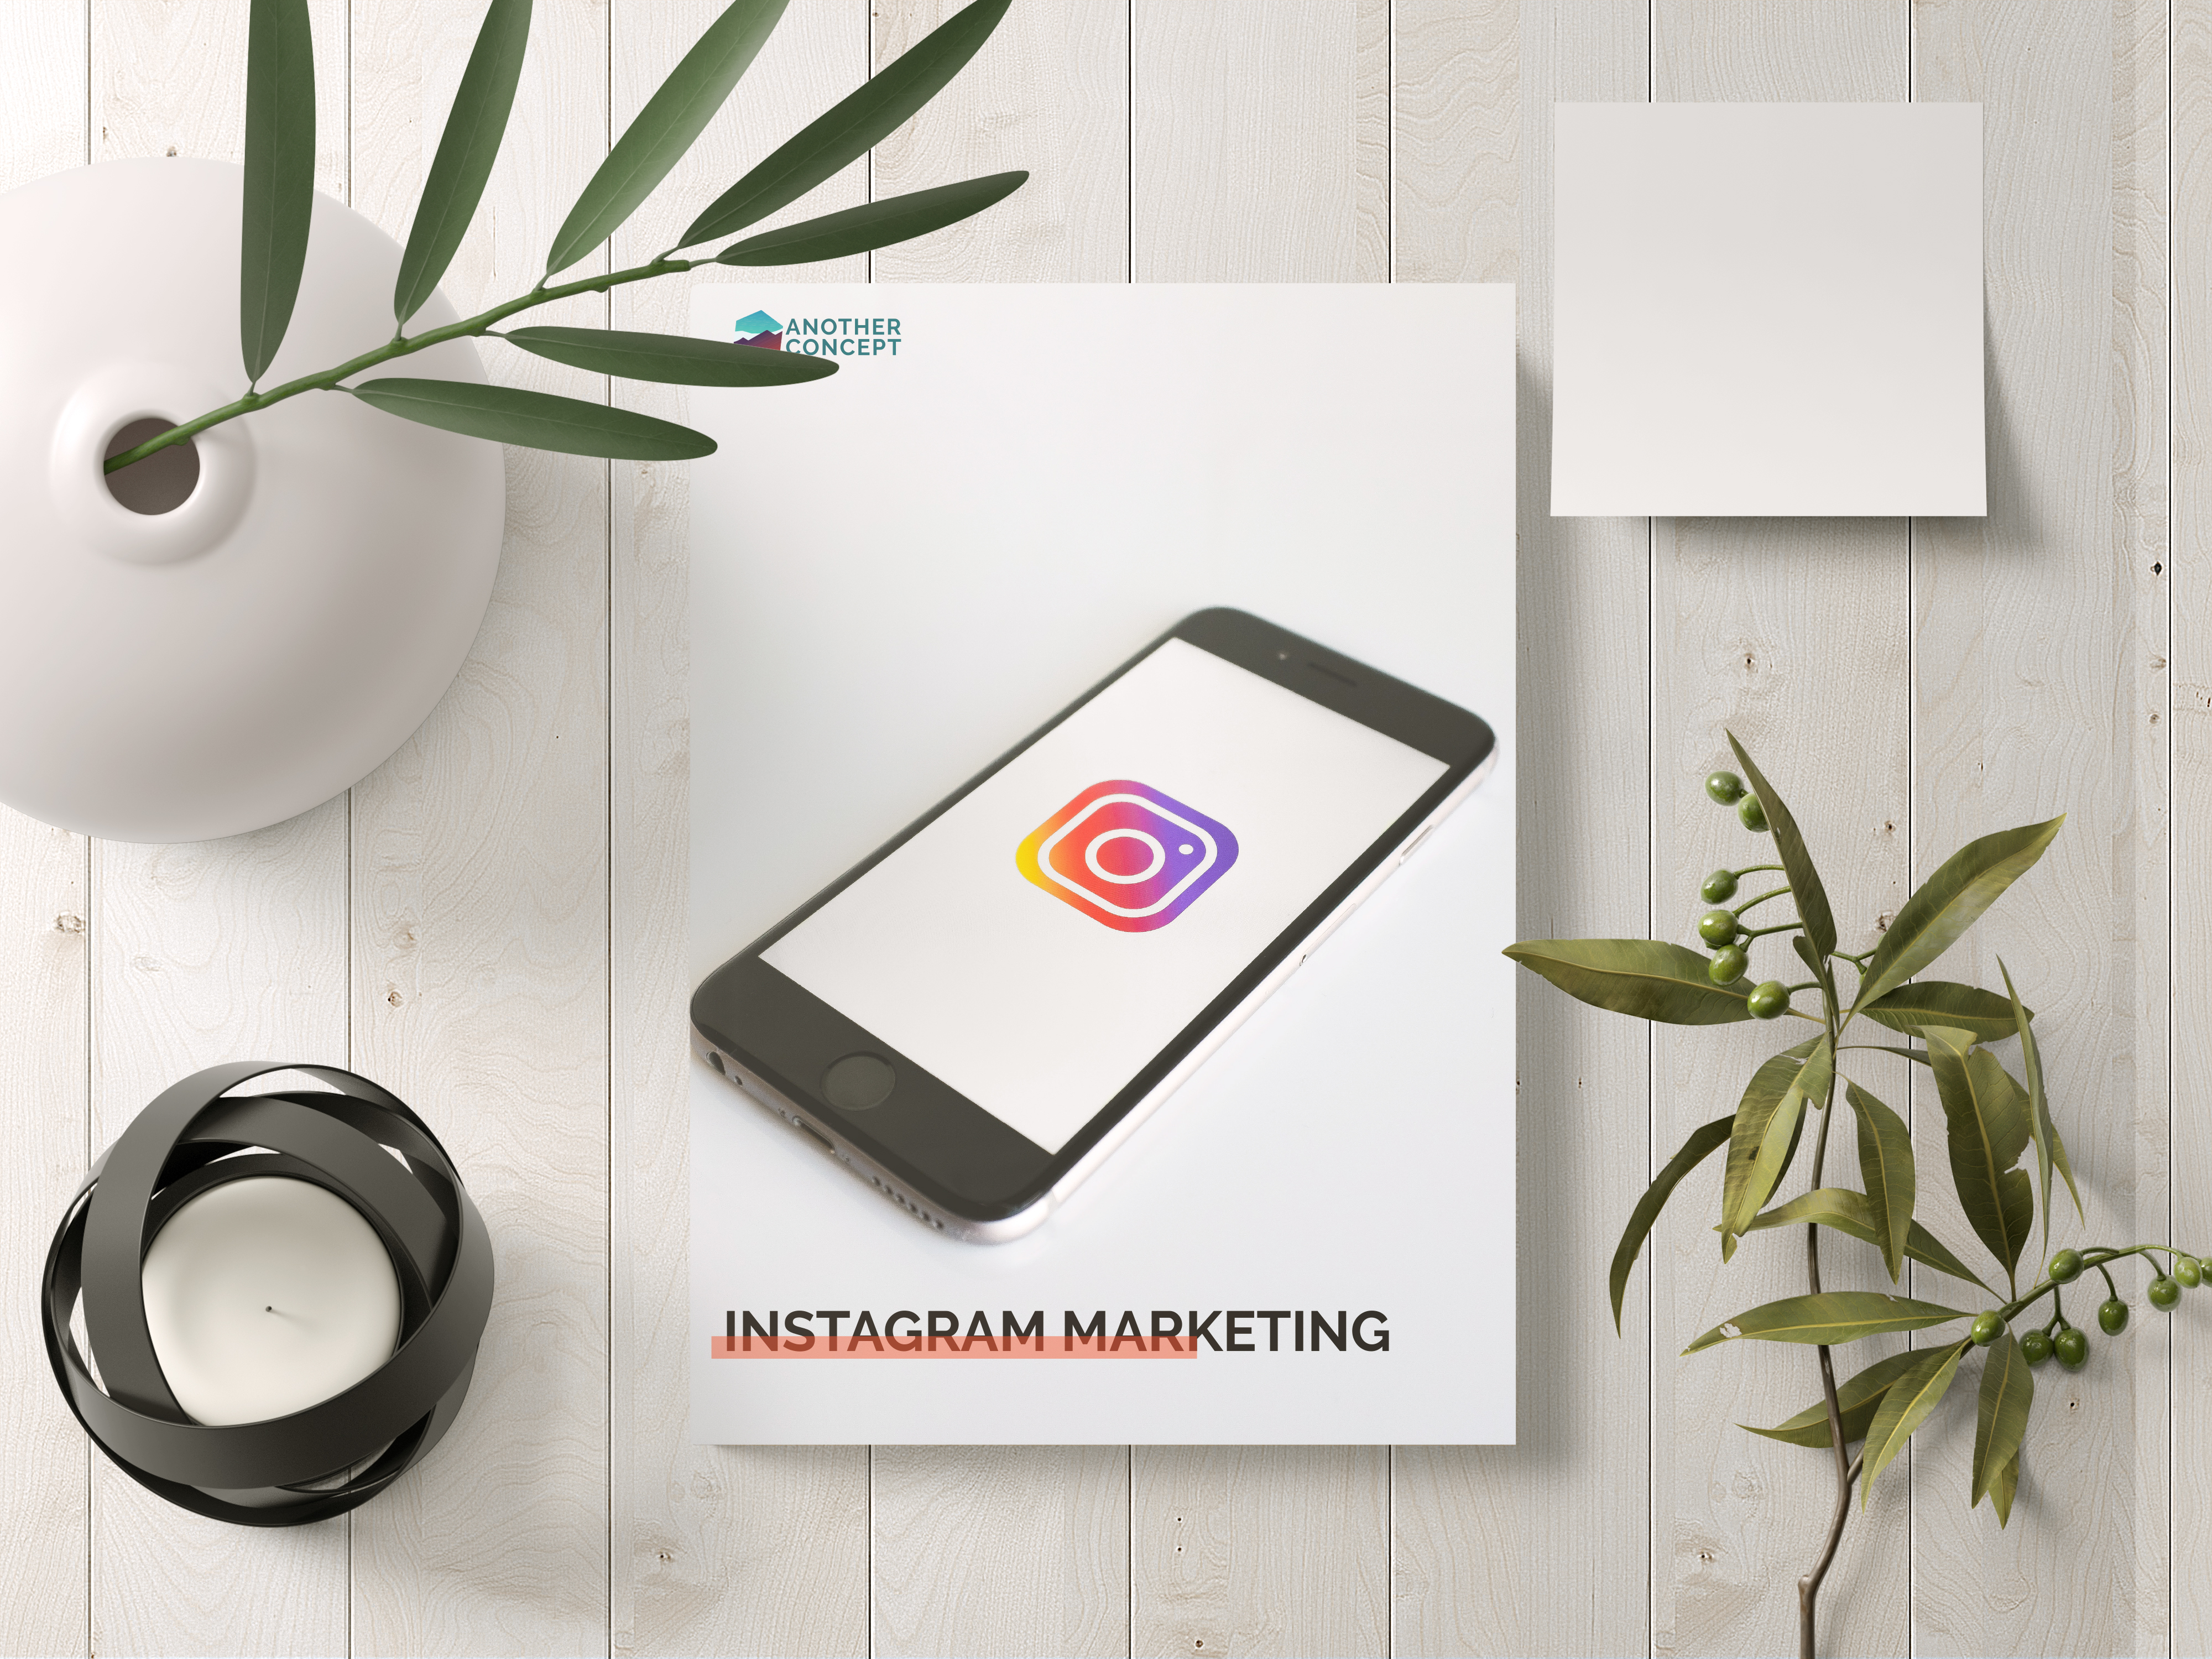 Instagram ebook - Another Concept